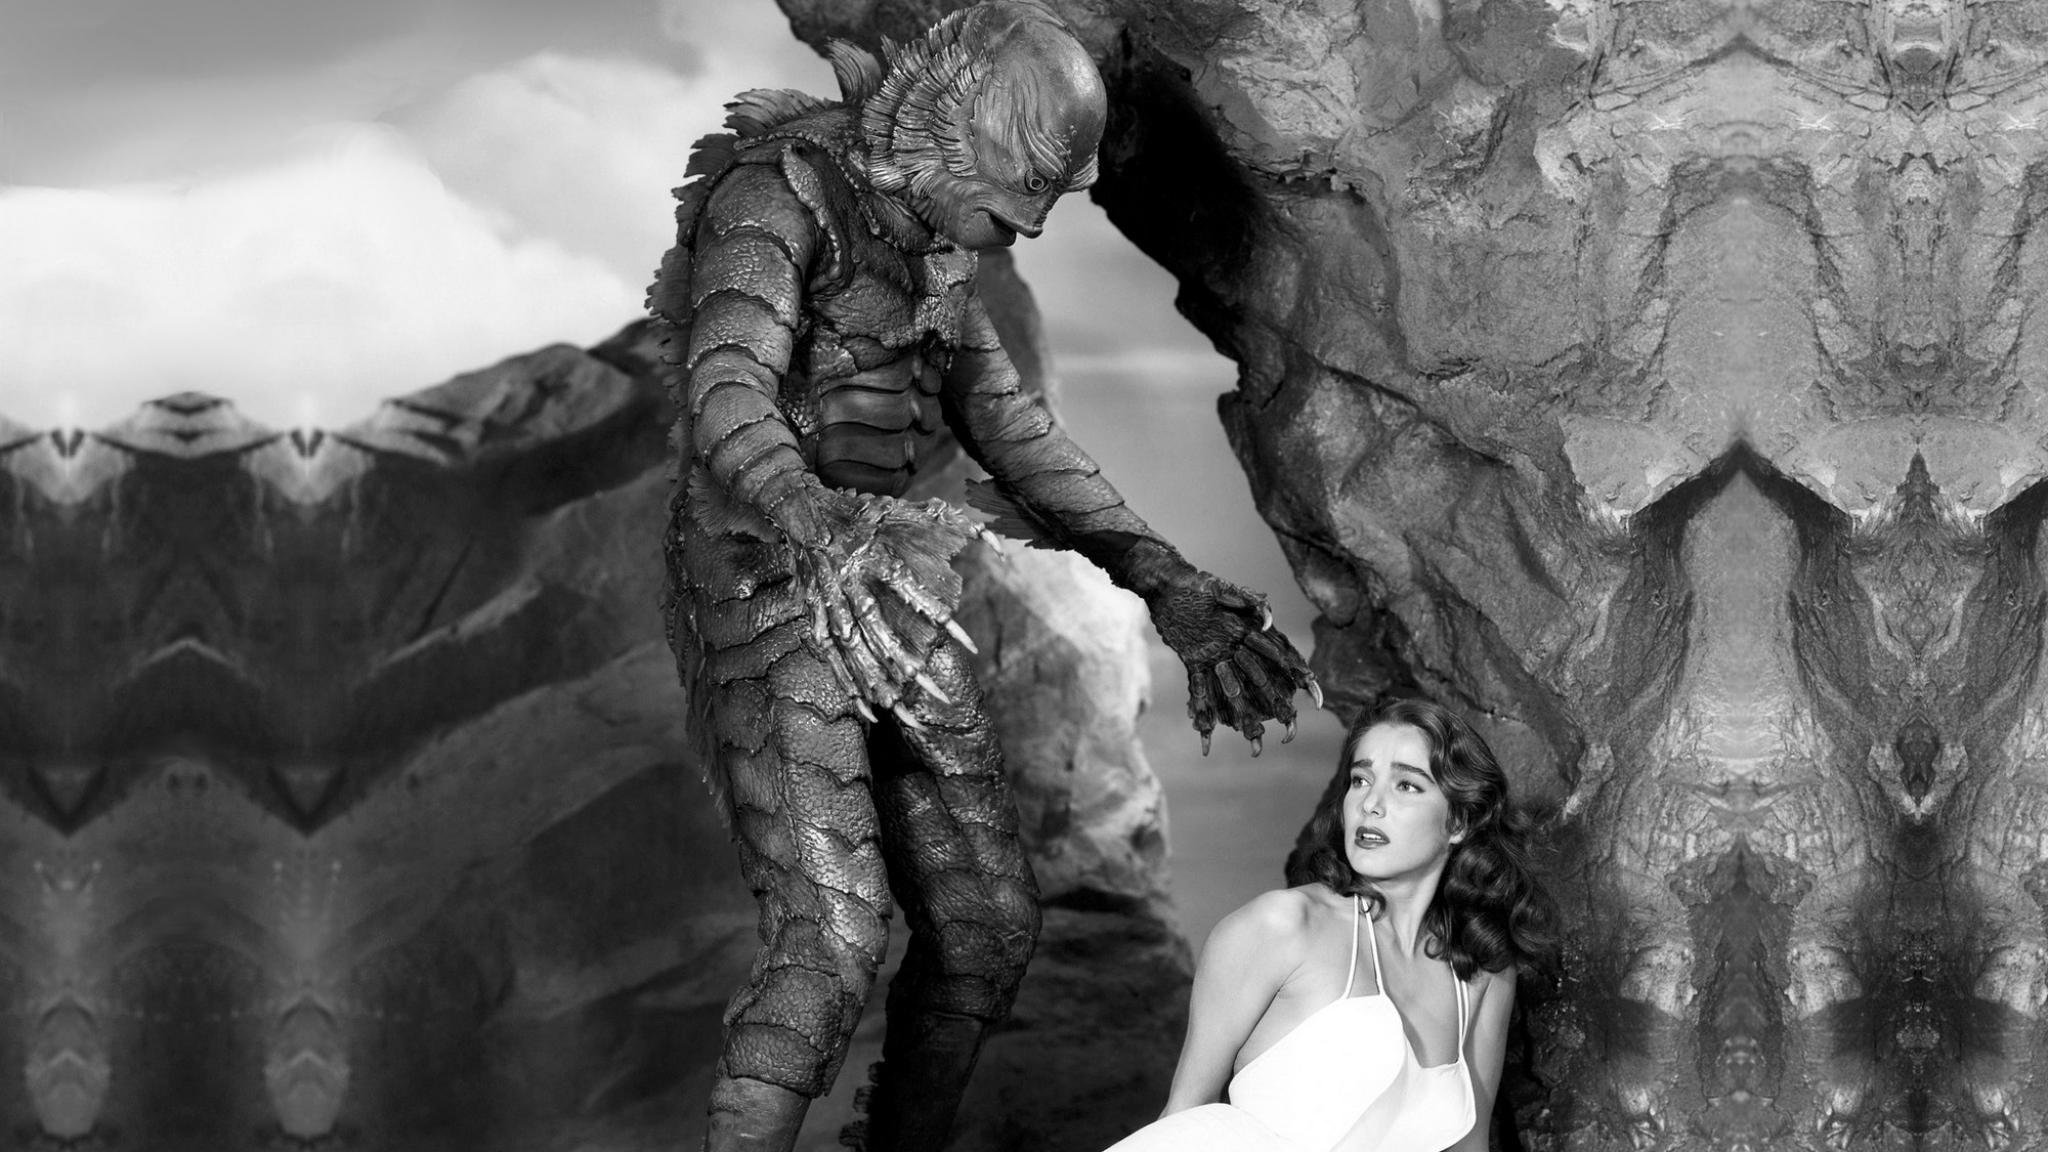 Creature From The Black Lagoon Wallpapers Hd For Desktop Backgrounds